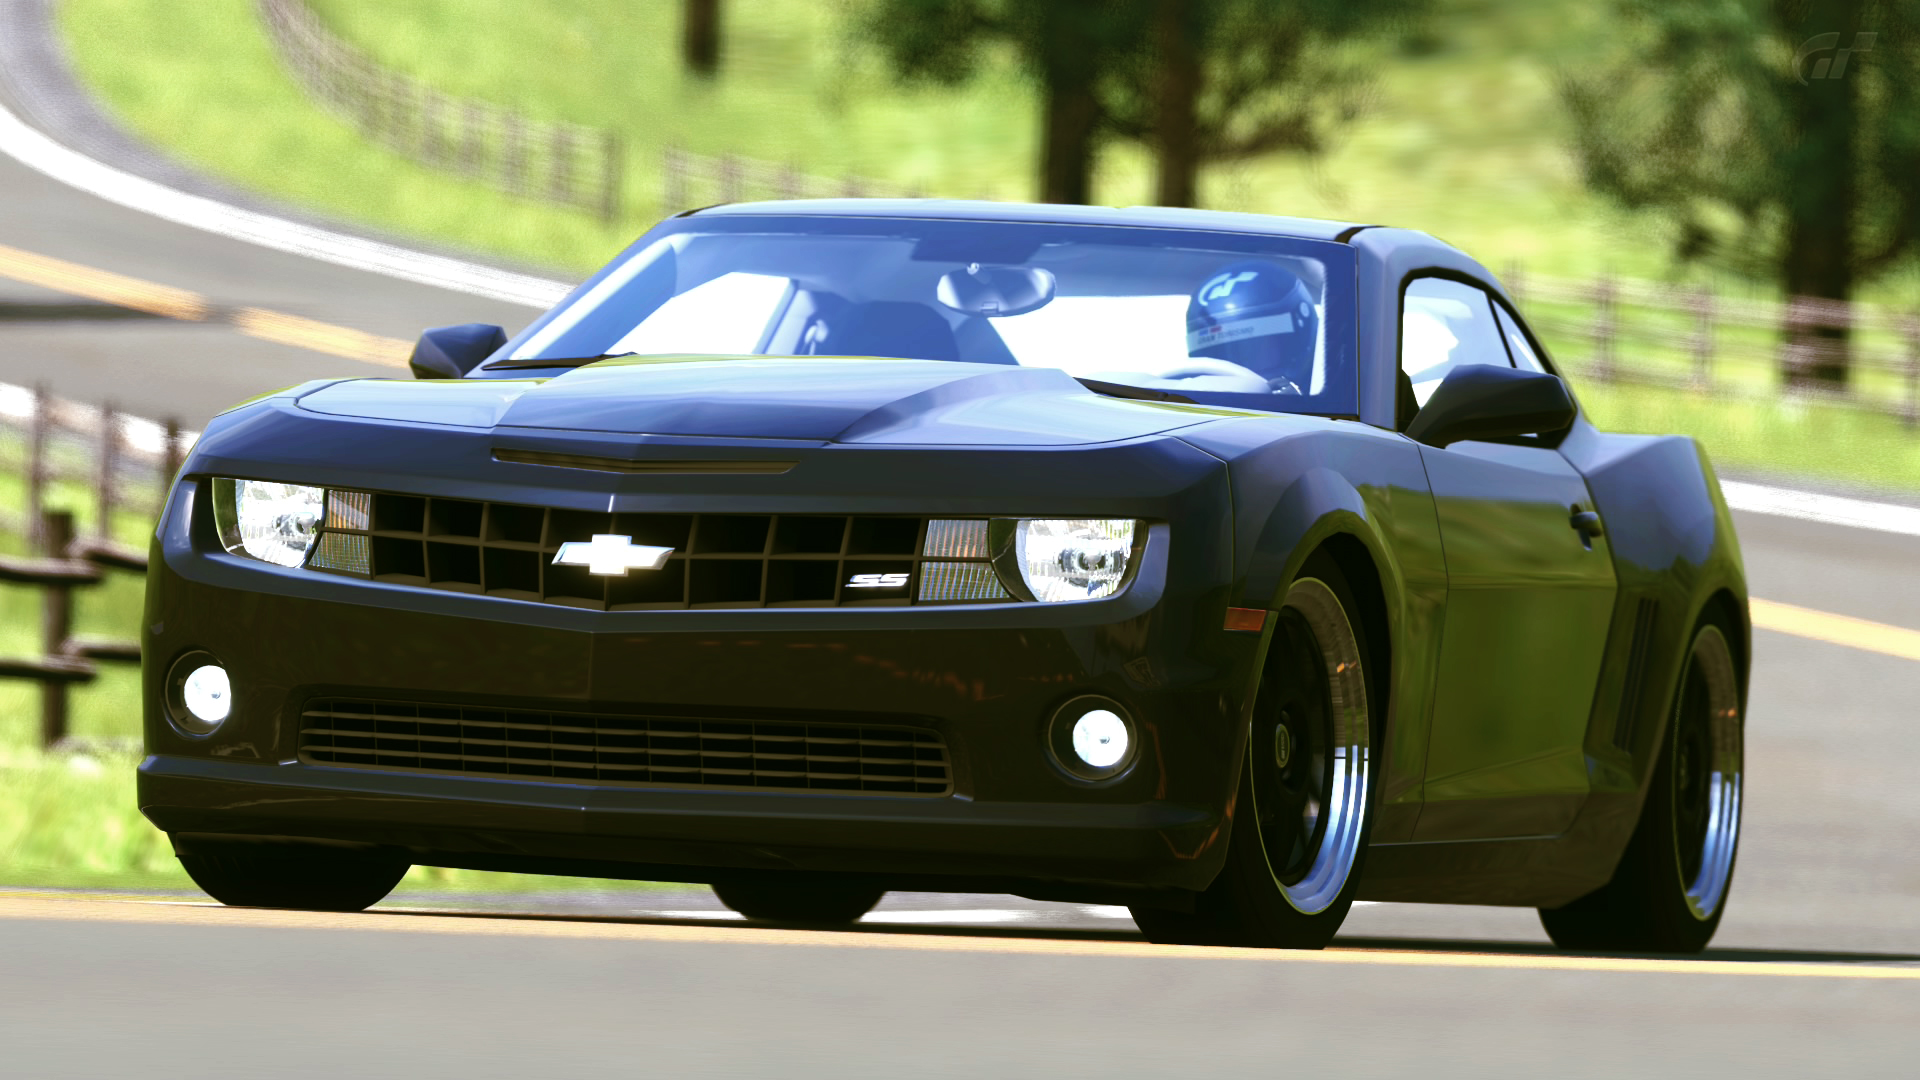 2010 chevrolet camaro ss gran turismo 5 by vertualissimo on deviantart. Black Bedroom Furniture Sets. Home Design Ideas